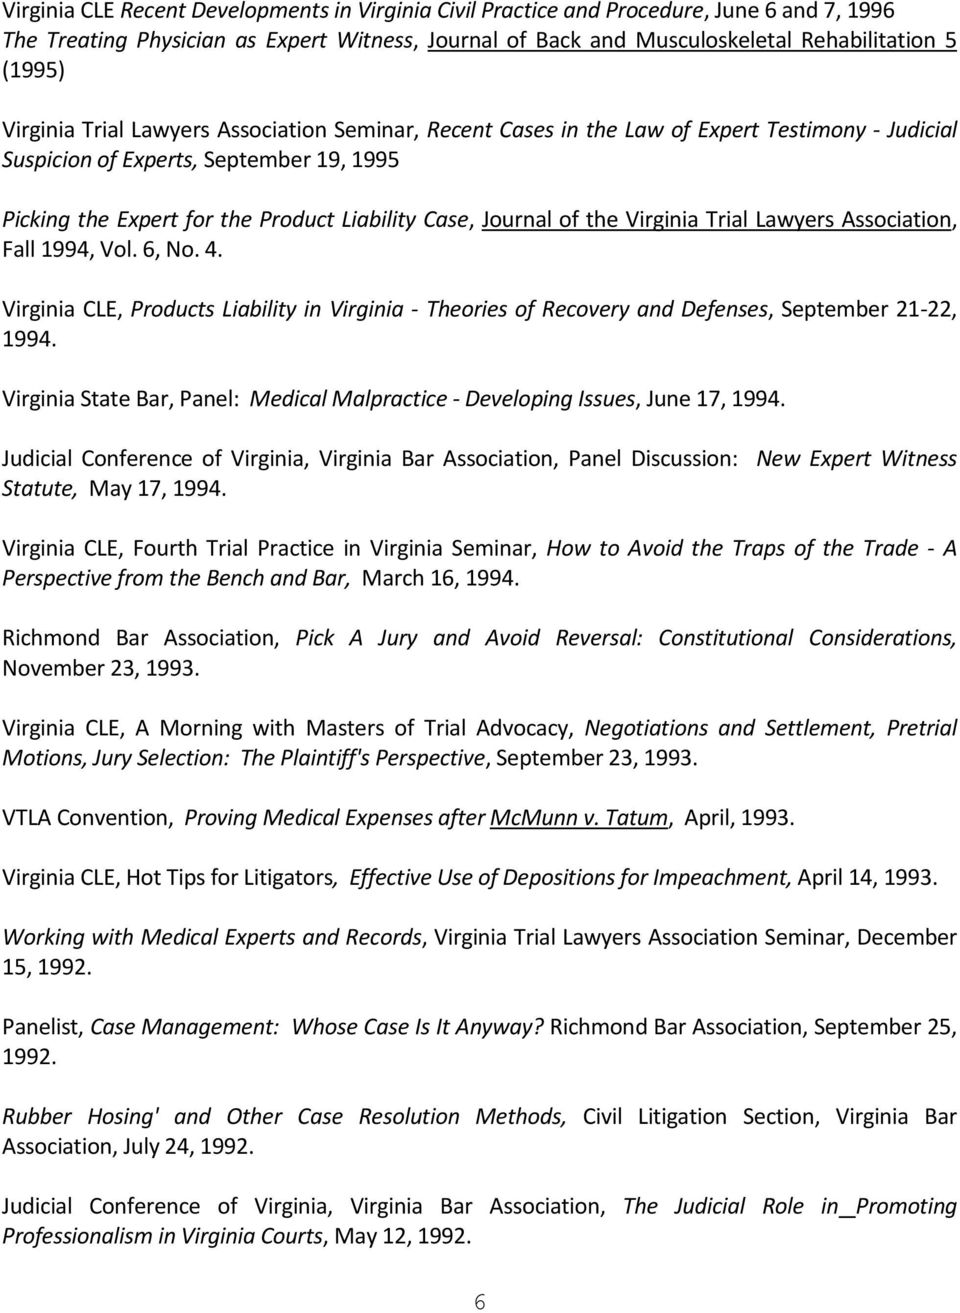 of the Virginia Trial Lawyers Association, Fall 1994, Vol. 6, No. 4. Virginia CLE, Products Liability in Virginia - Theories of Recovery and Defenses, September 21-22, 1994.